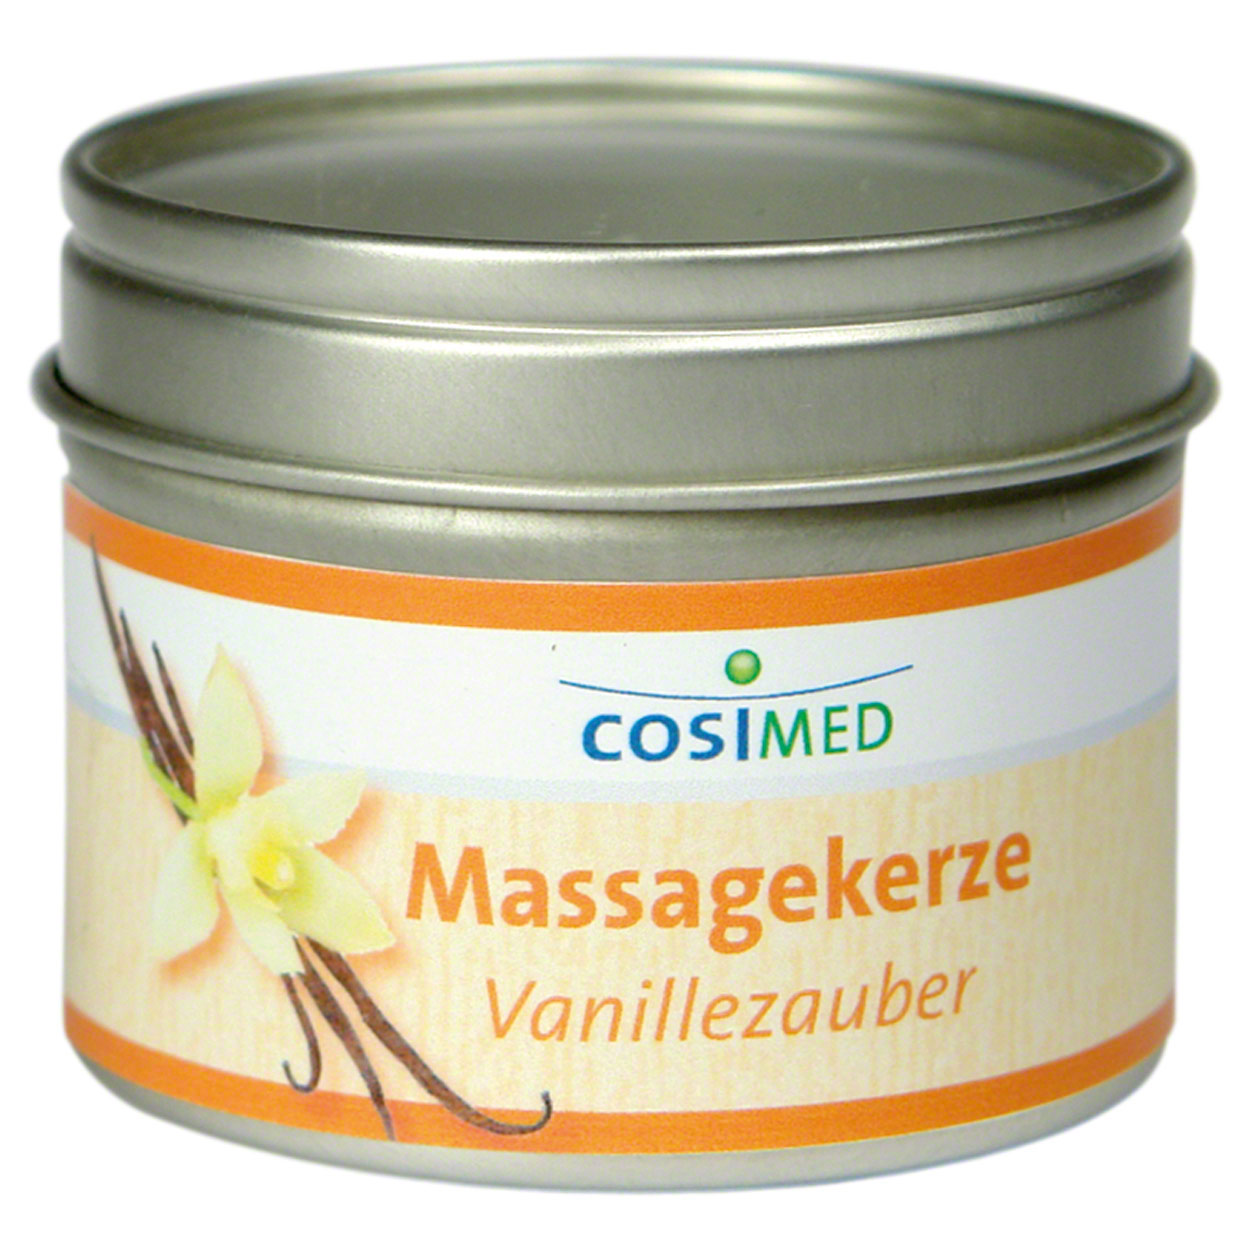 Therapiebedarf: cosiMed Massagekerze Vanillezauber, 92 g